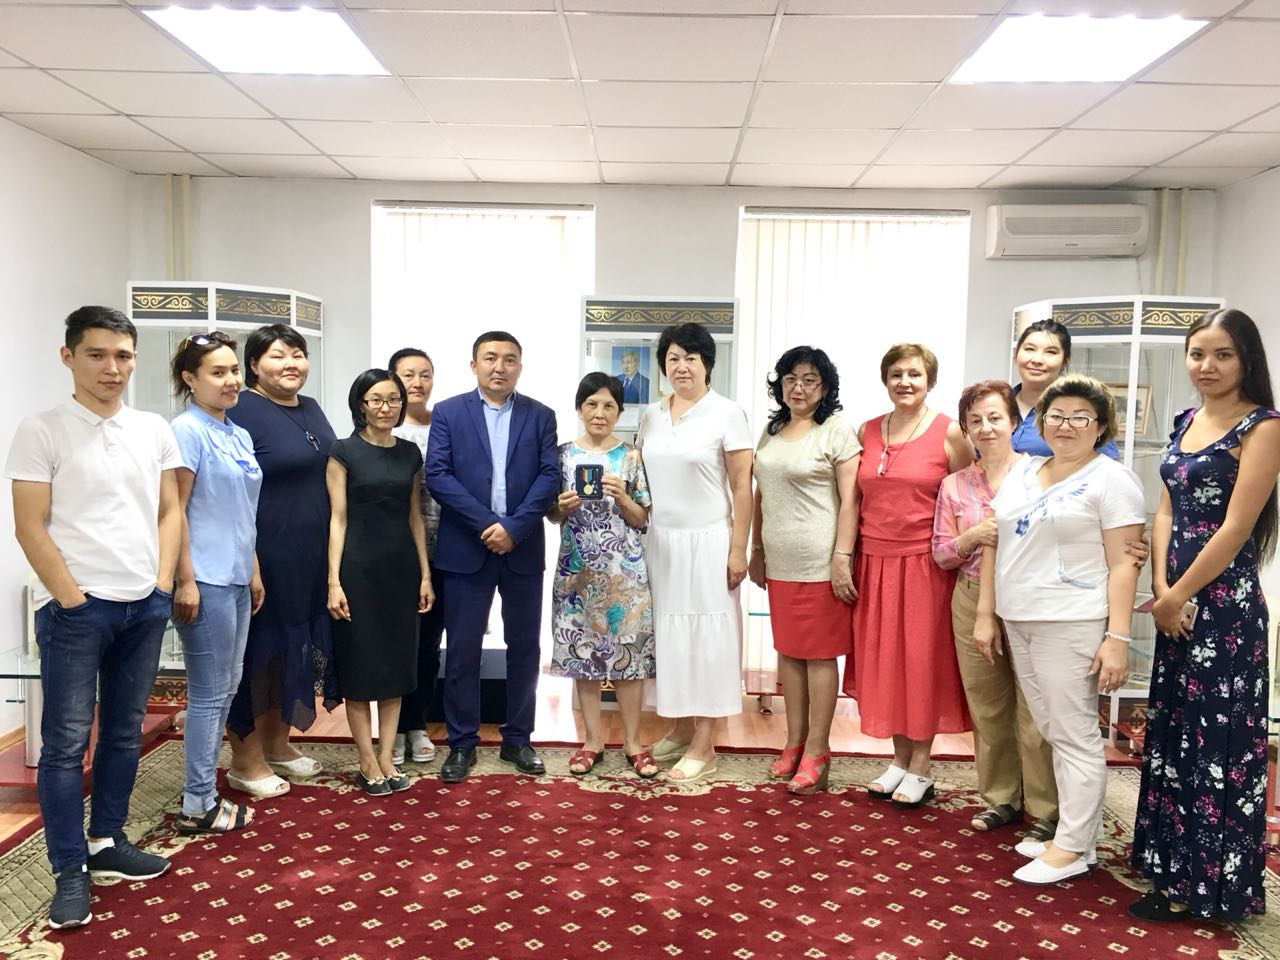 """On 18 of July 2018 the archivists of the Division Coordination of Working departmental archives and paperwork, publication and using documents Alshynbayeva M. and Mukanova G. were conducted an excursion for the staff of the State Archive of Astana entitled """"Astana: past and future"""", devoted to 20th anniversary of capital."""